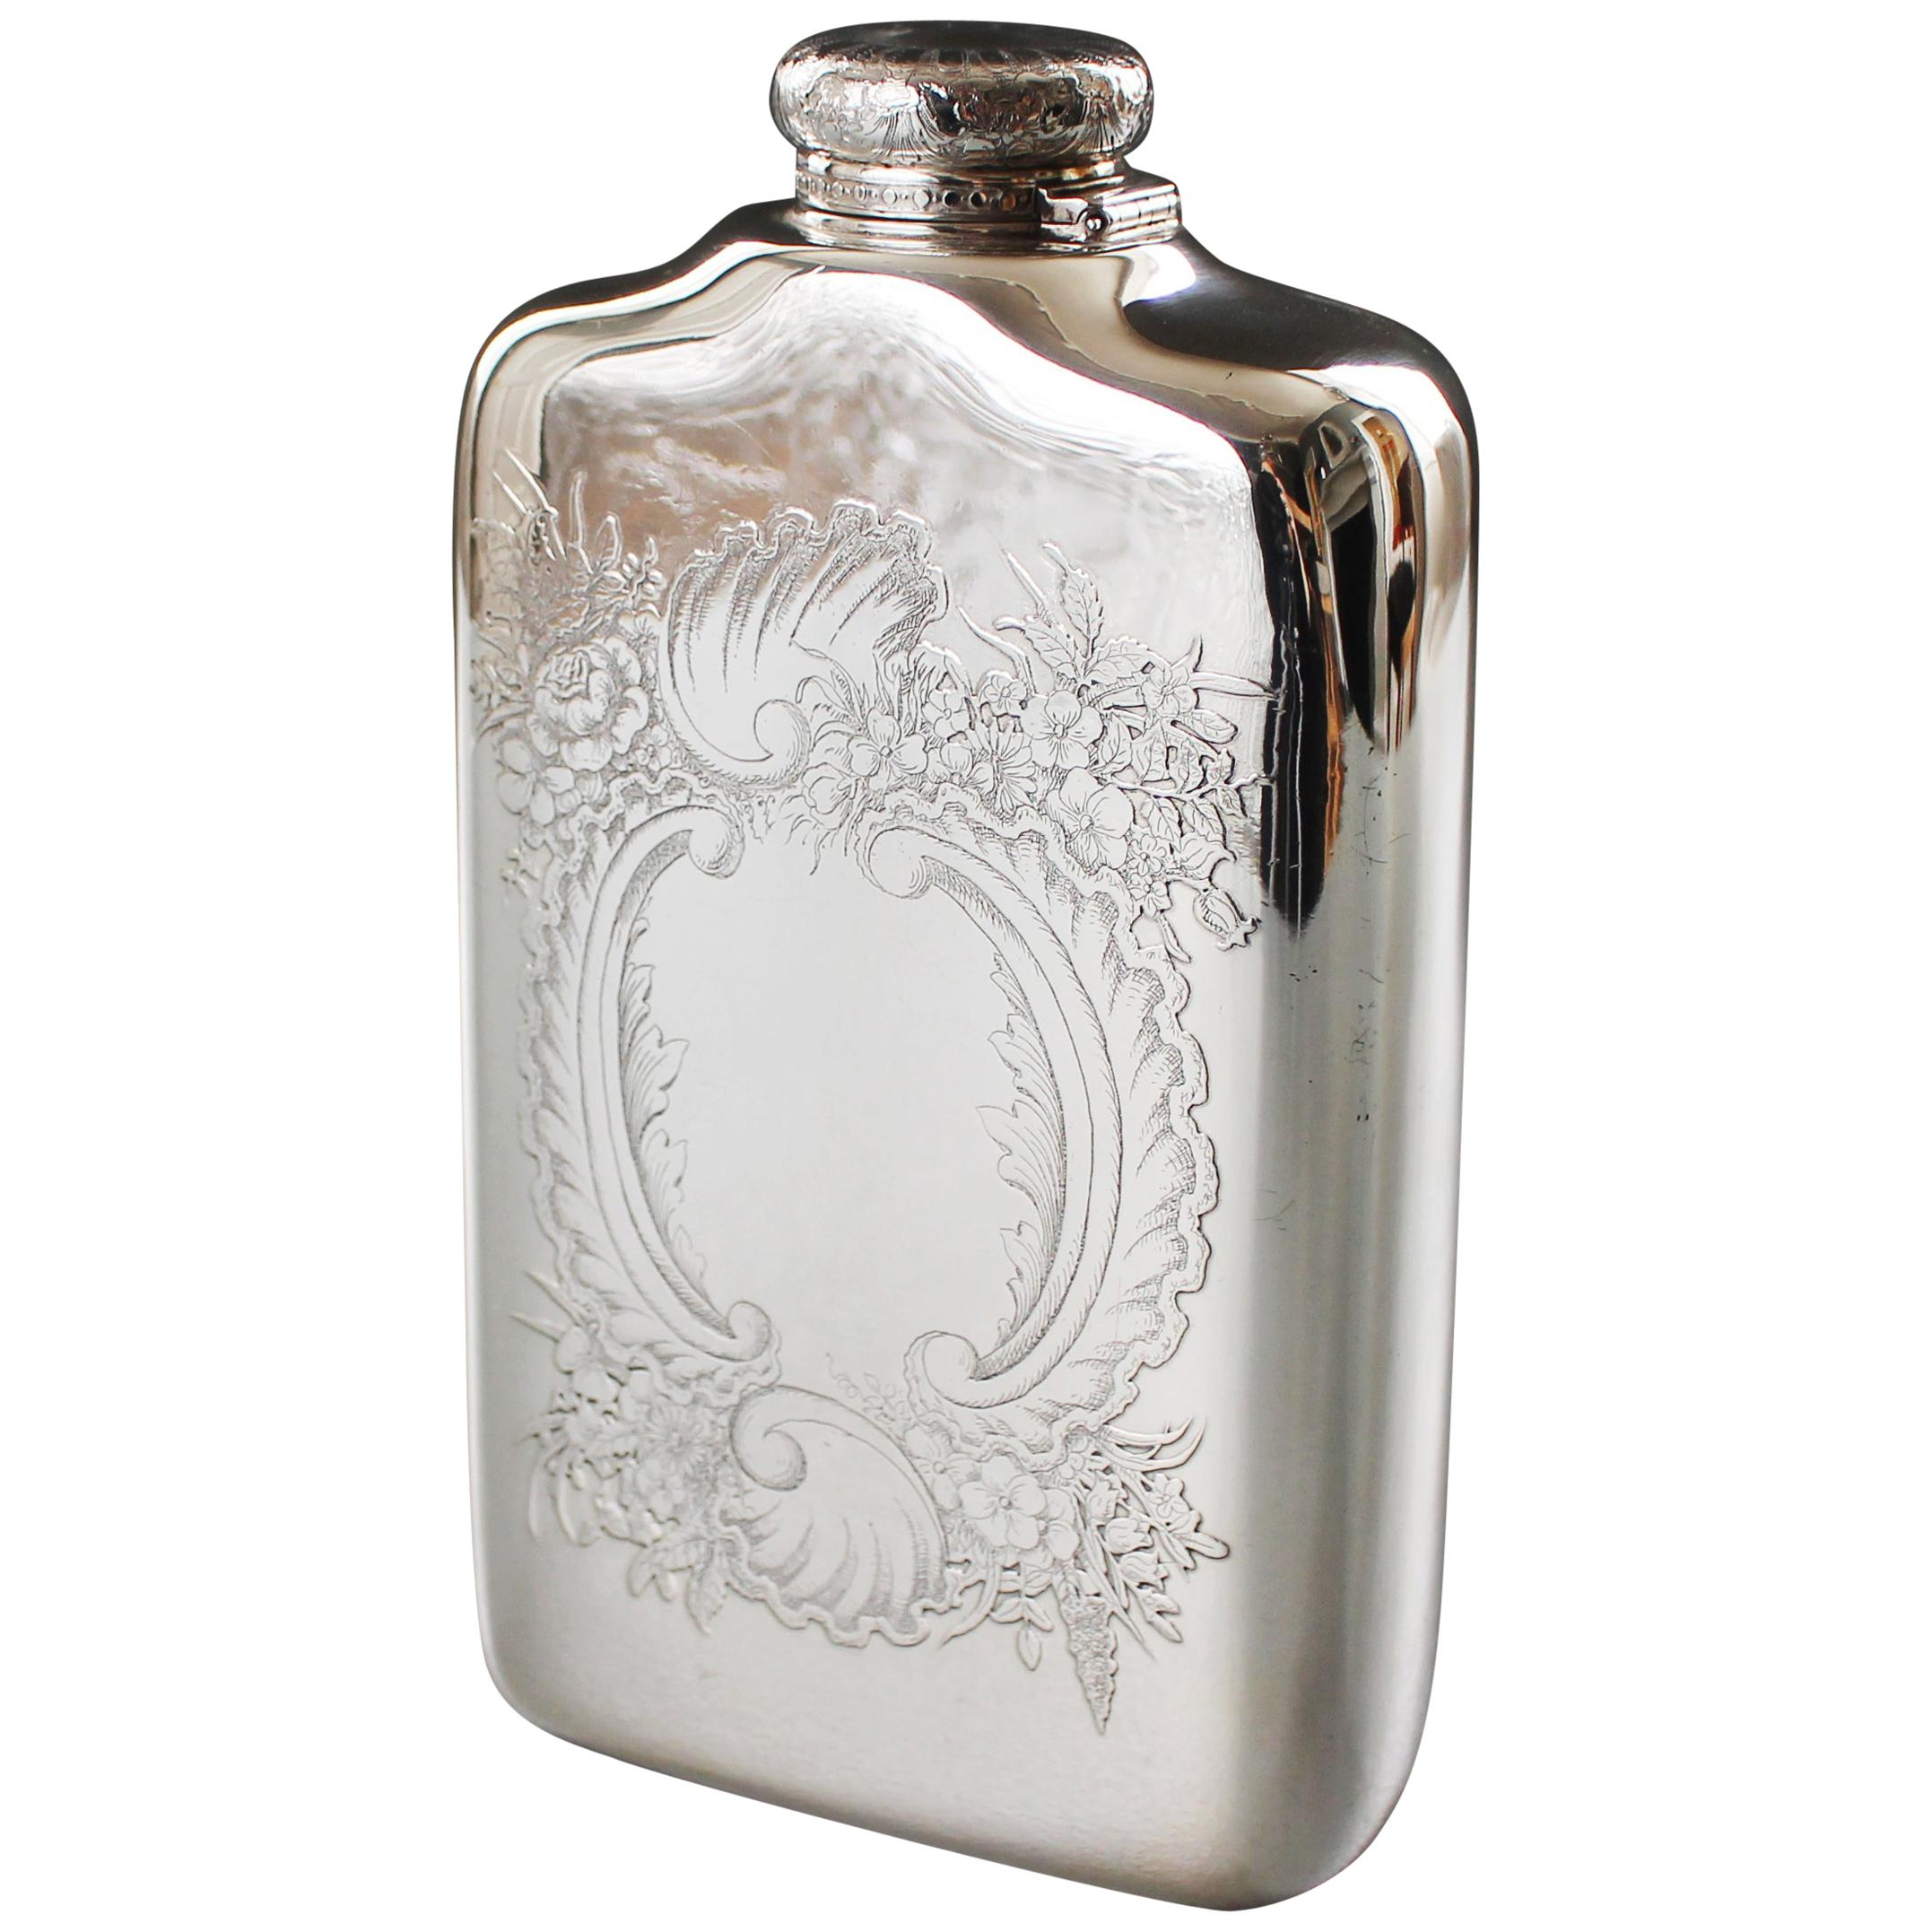 Tiffany Silver Spirit Flask